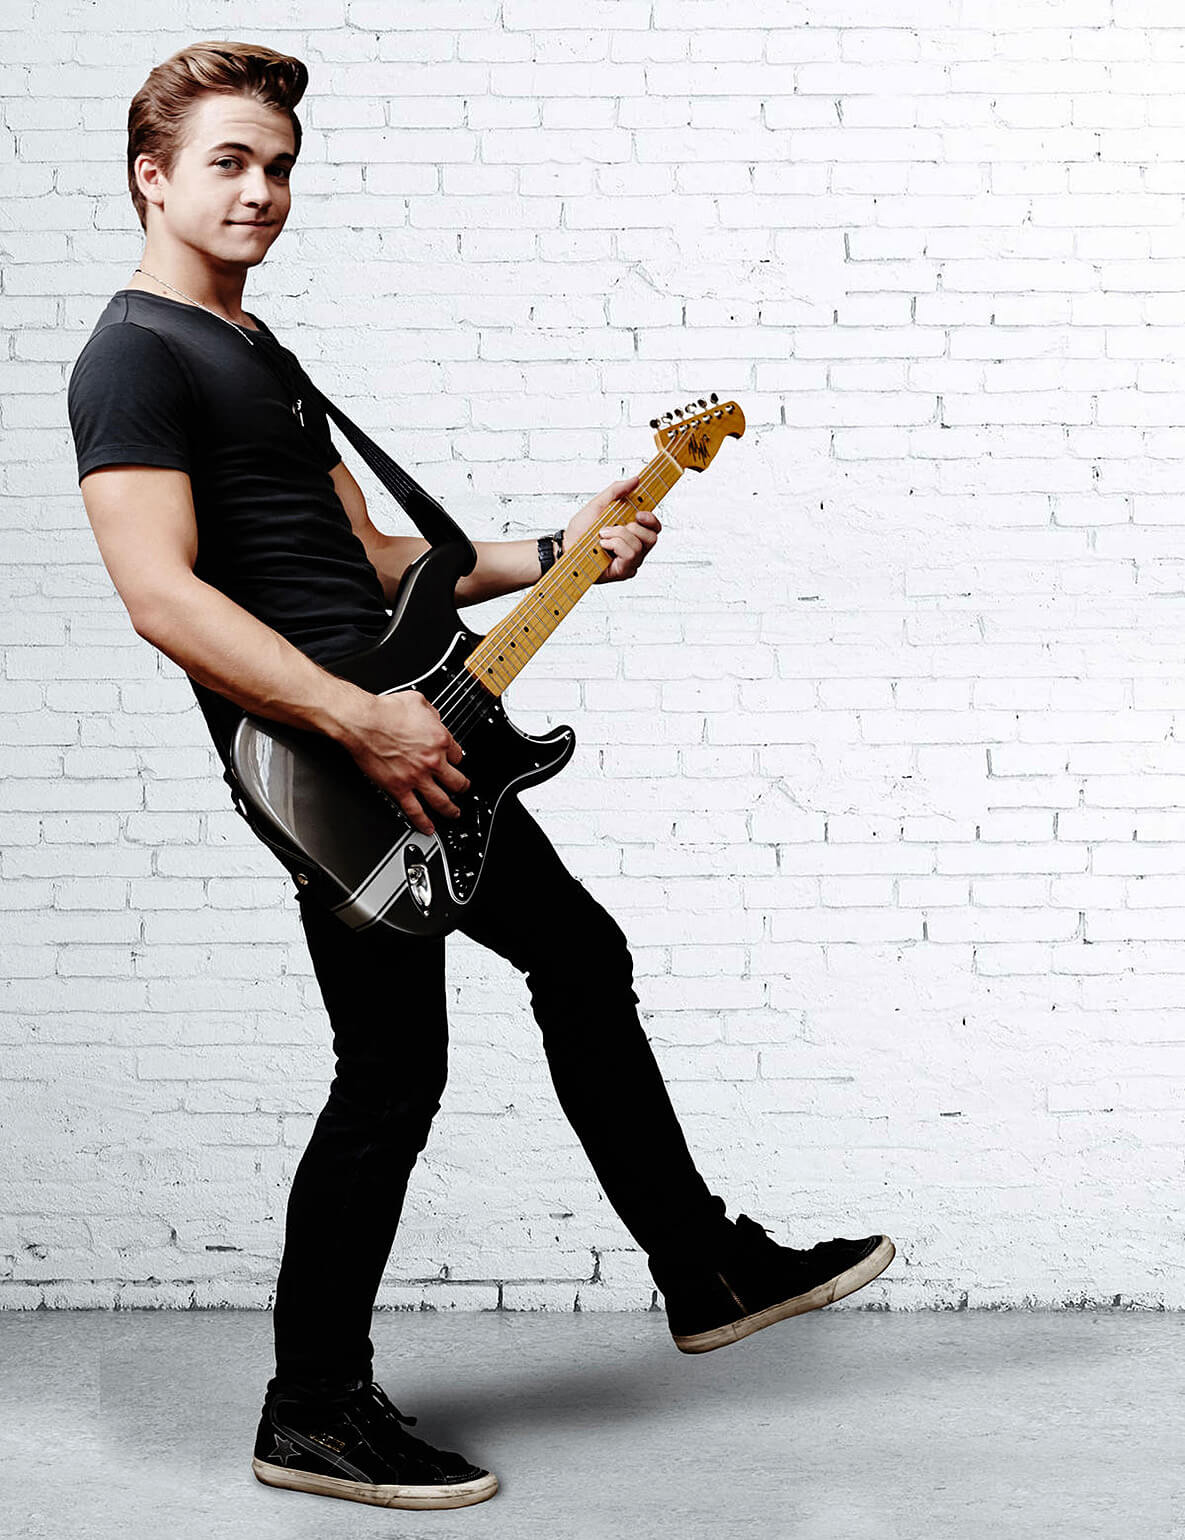 Hunter Hayes To Perform Oct 29 At Purdue As Part Of 21 Tour